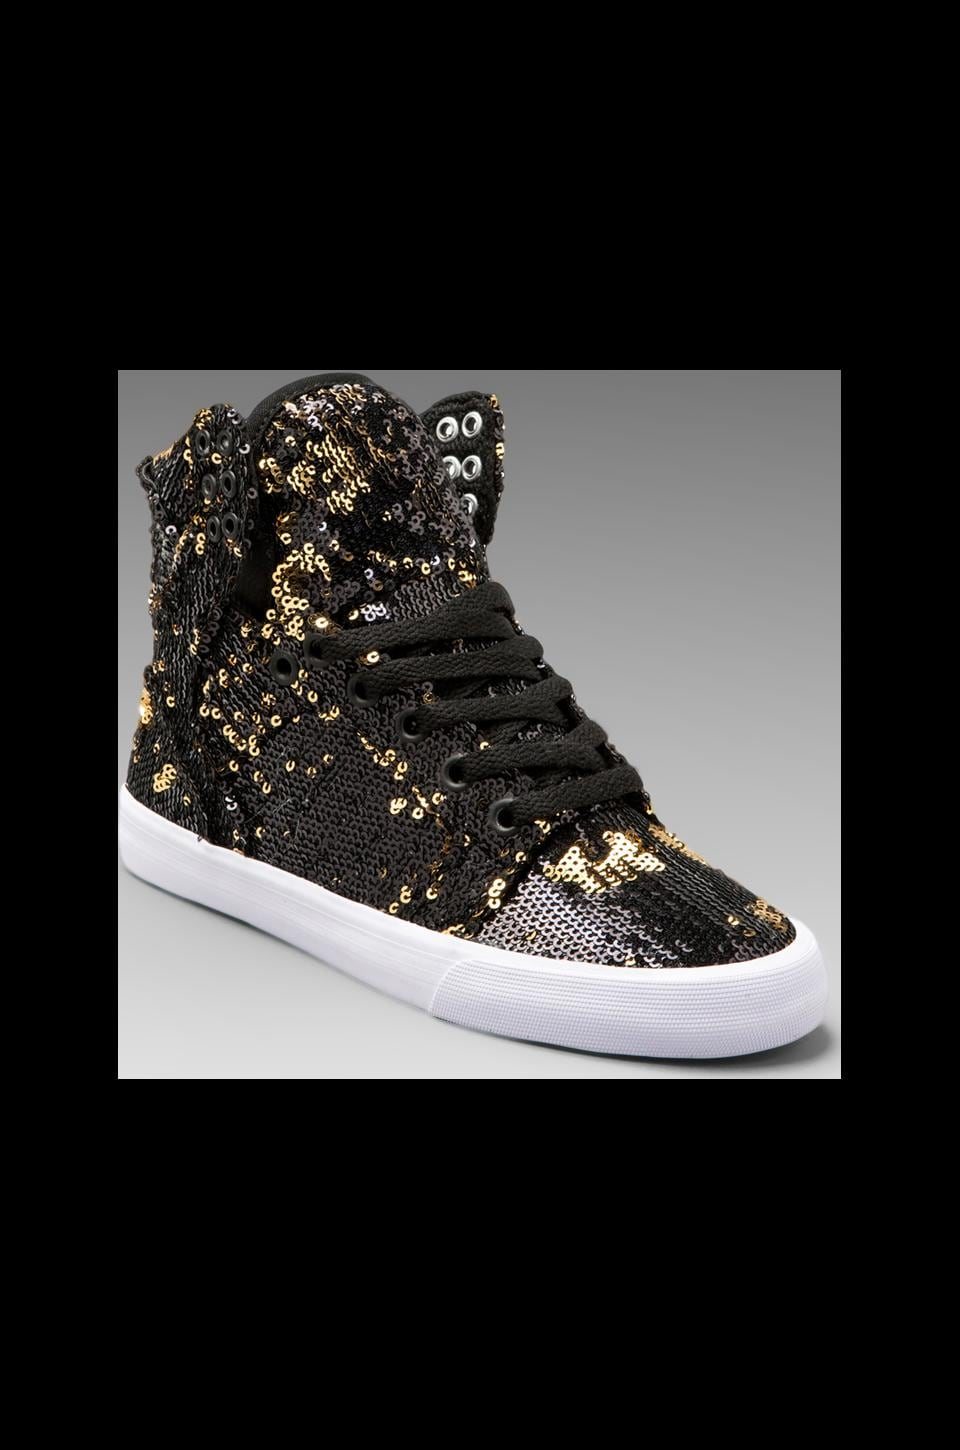 Supra Skytop Sneaker in Black/Gold